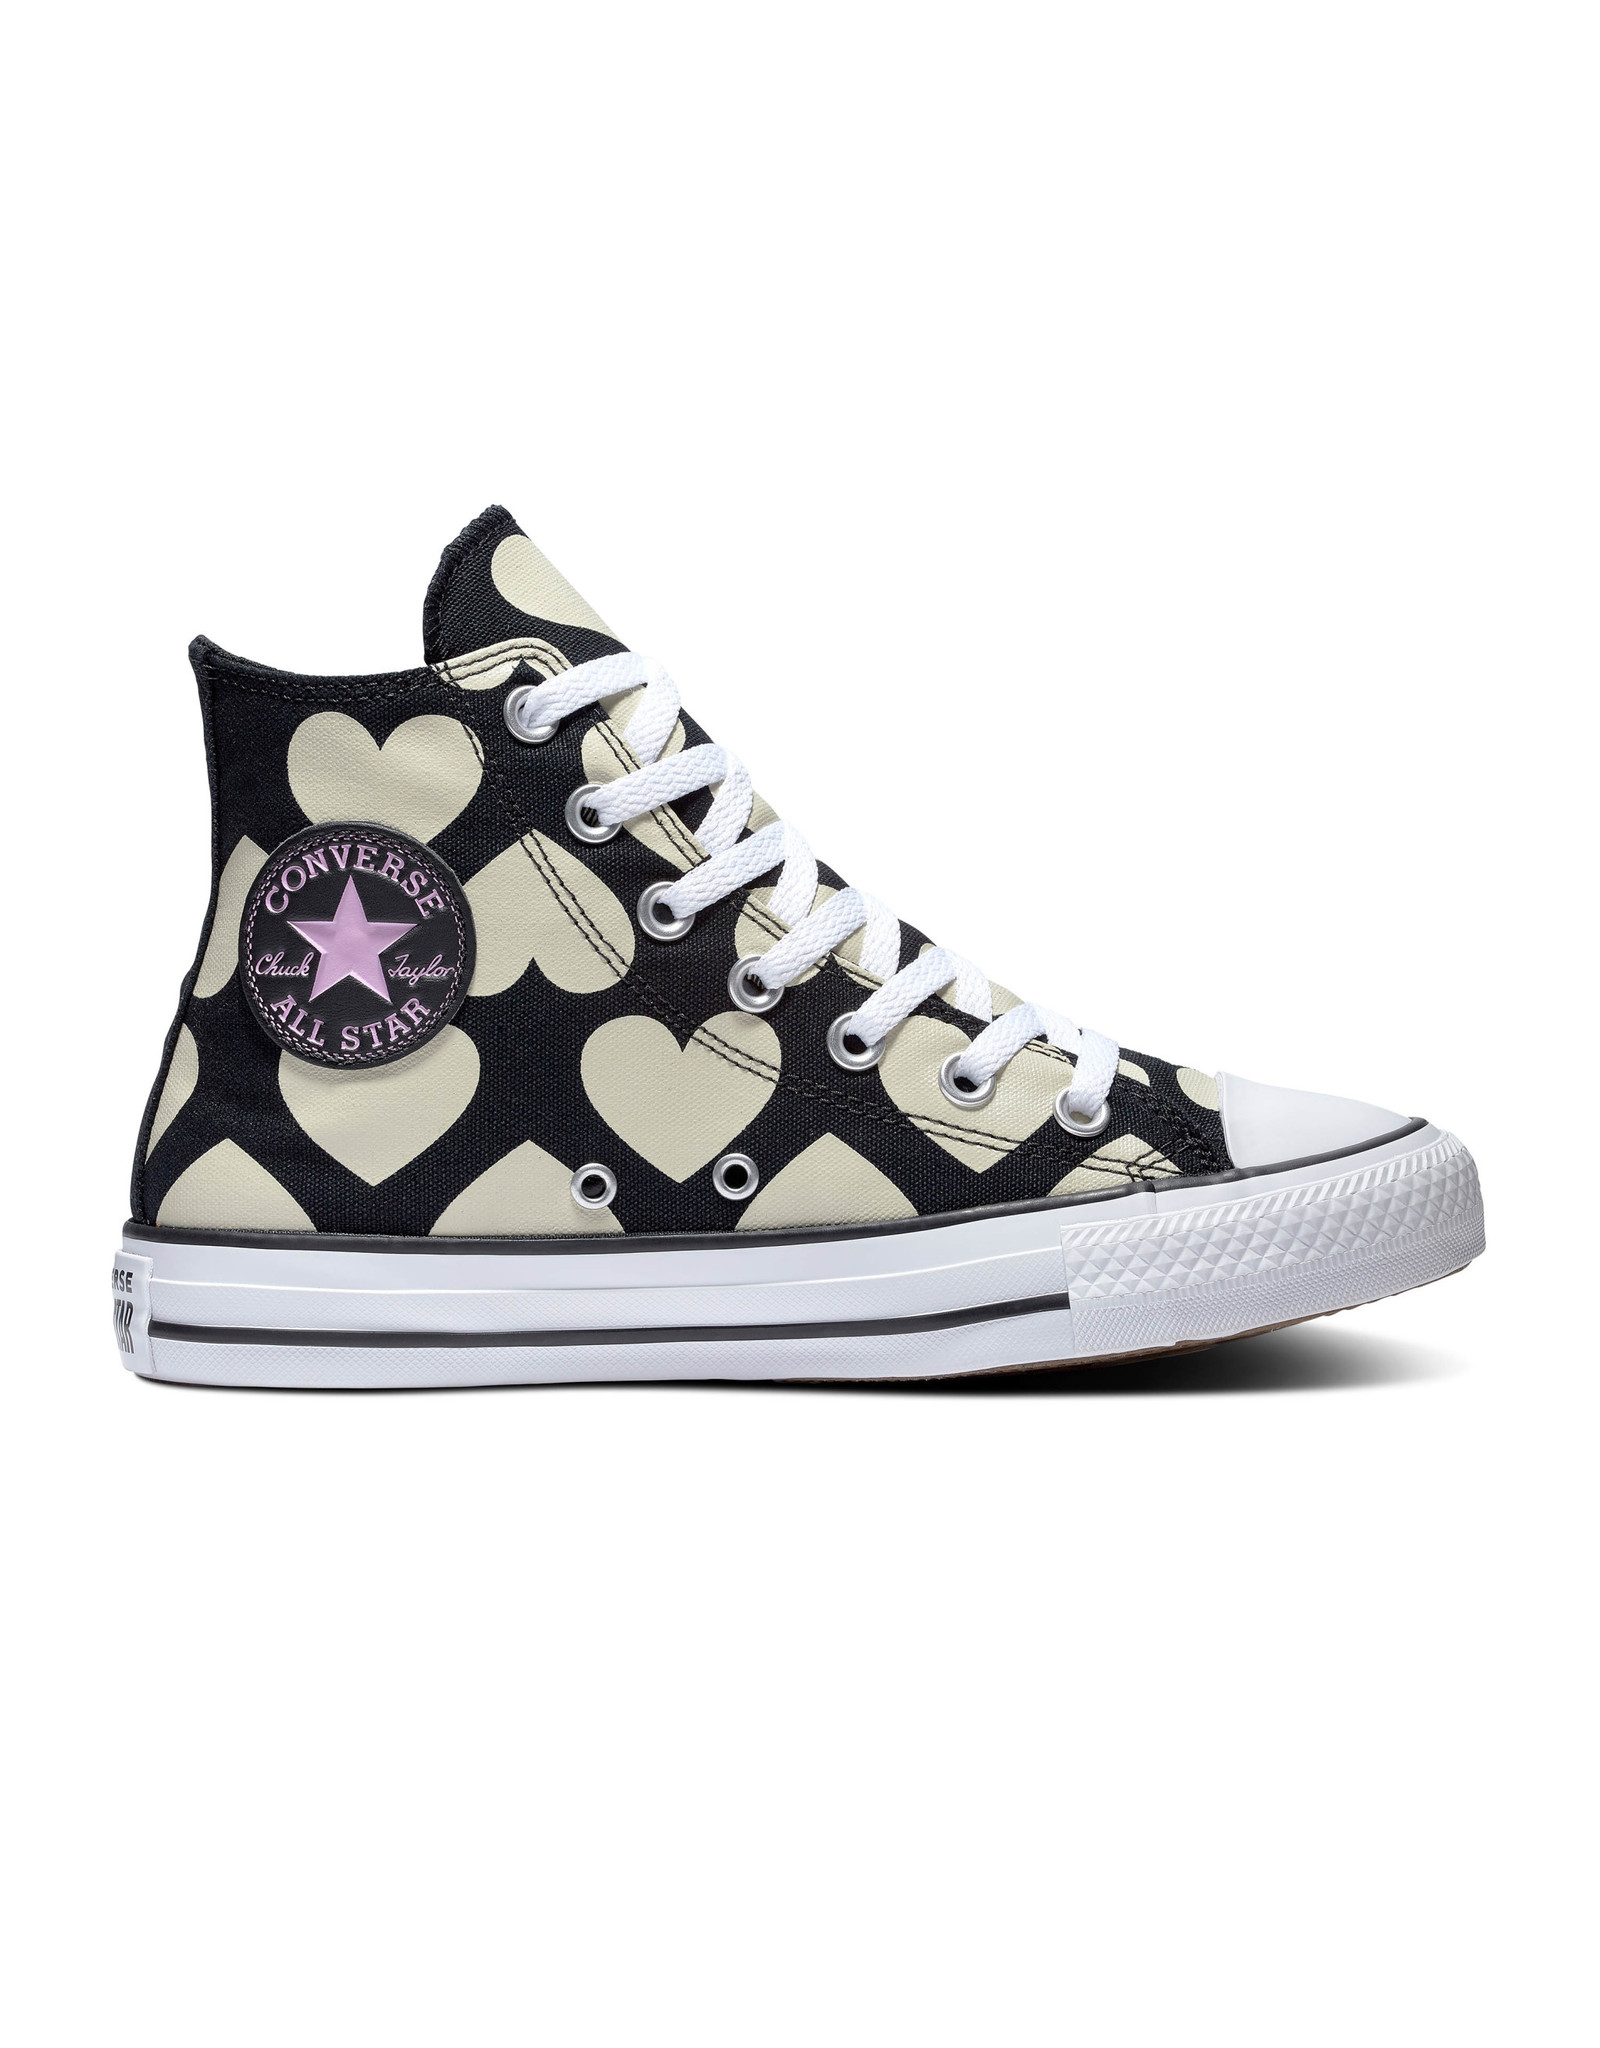 CONVERSE CHUCK TAYLOR ALL STAR HI BLACK/NATURAL IVORY/WHITE C20HEA-567143C